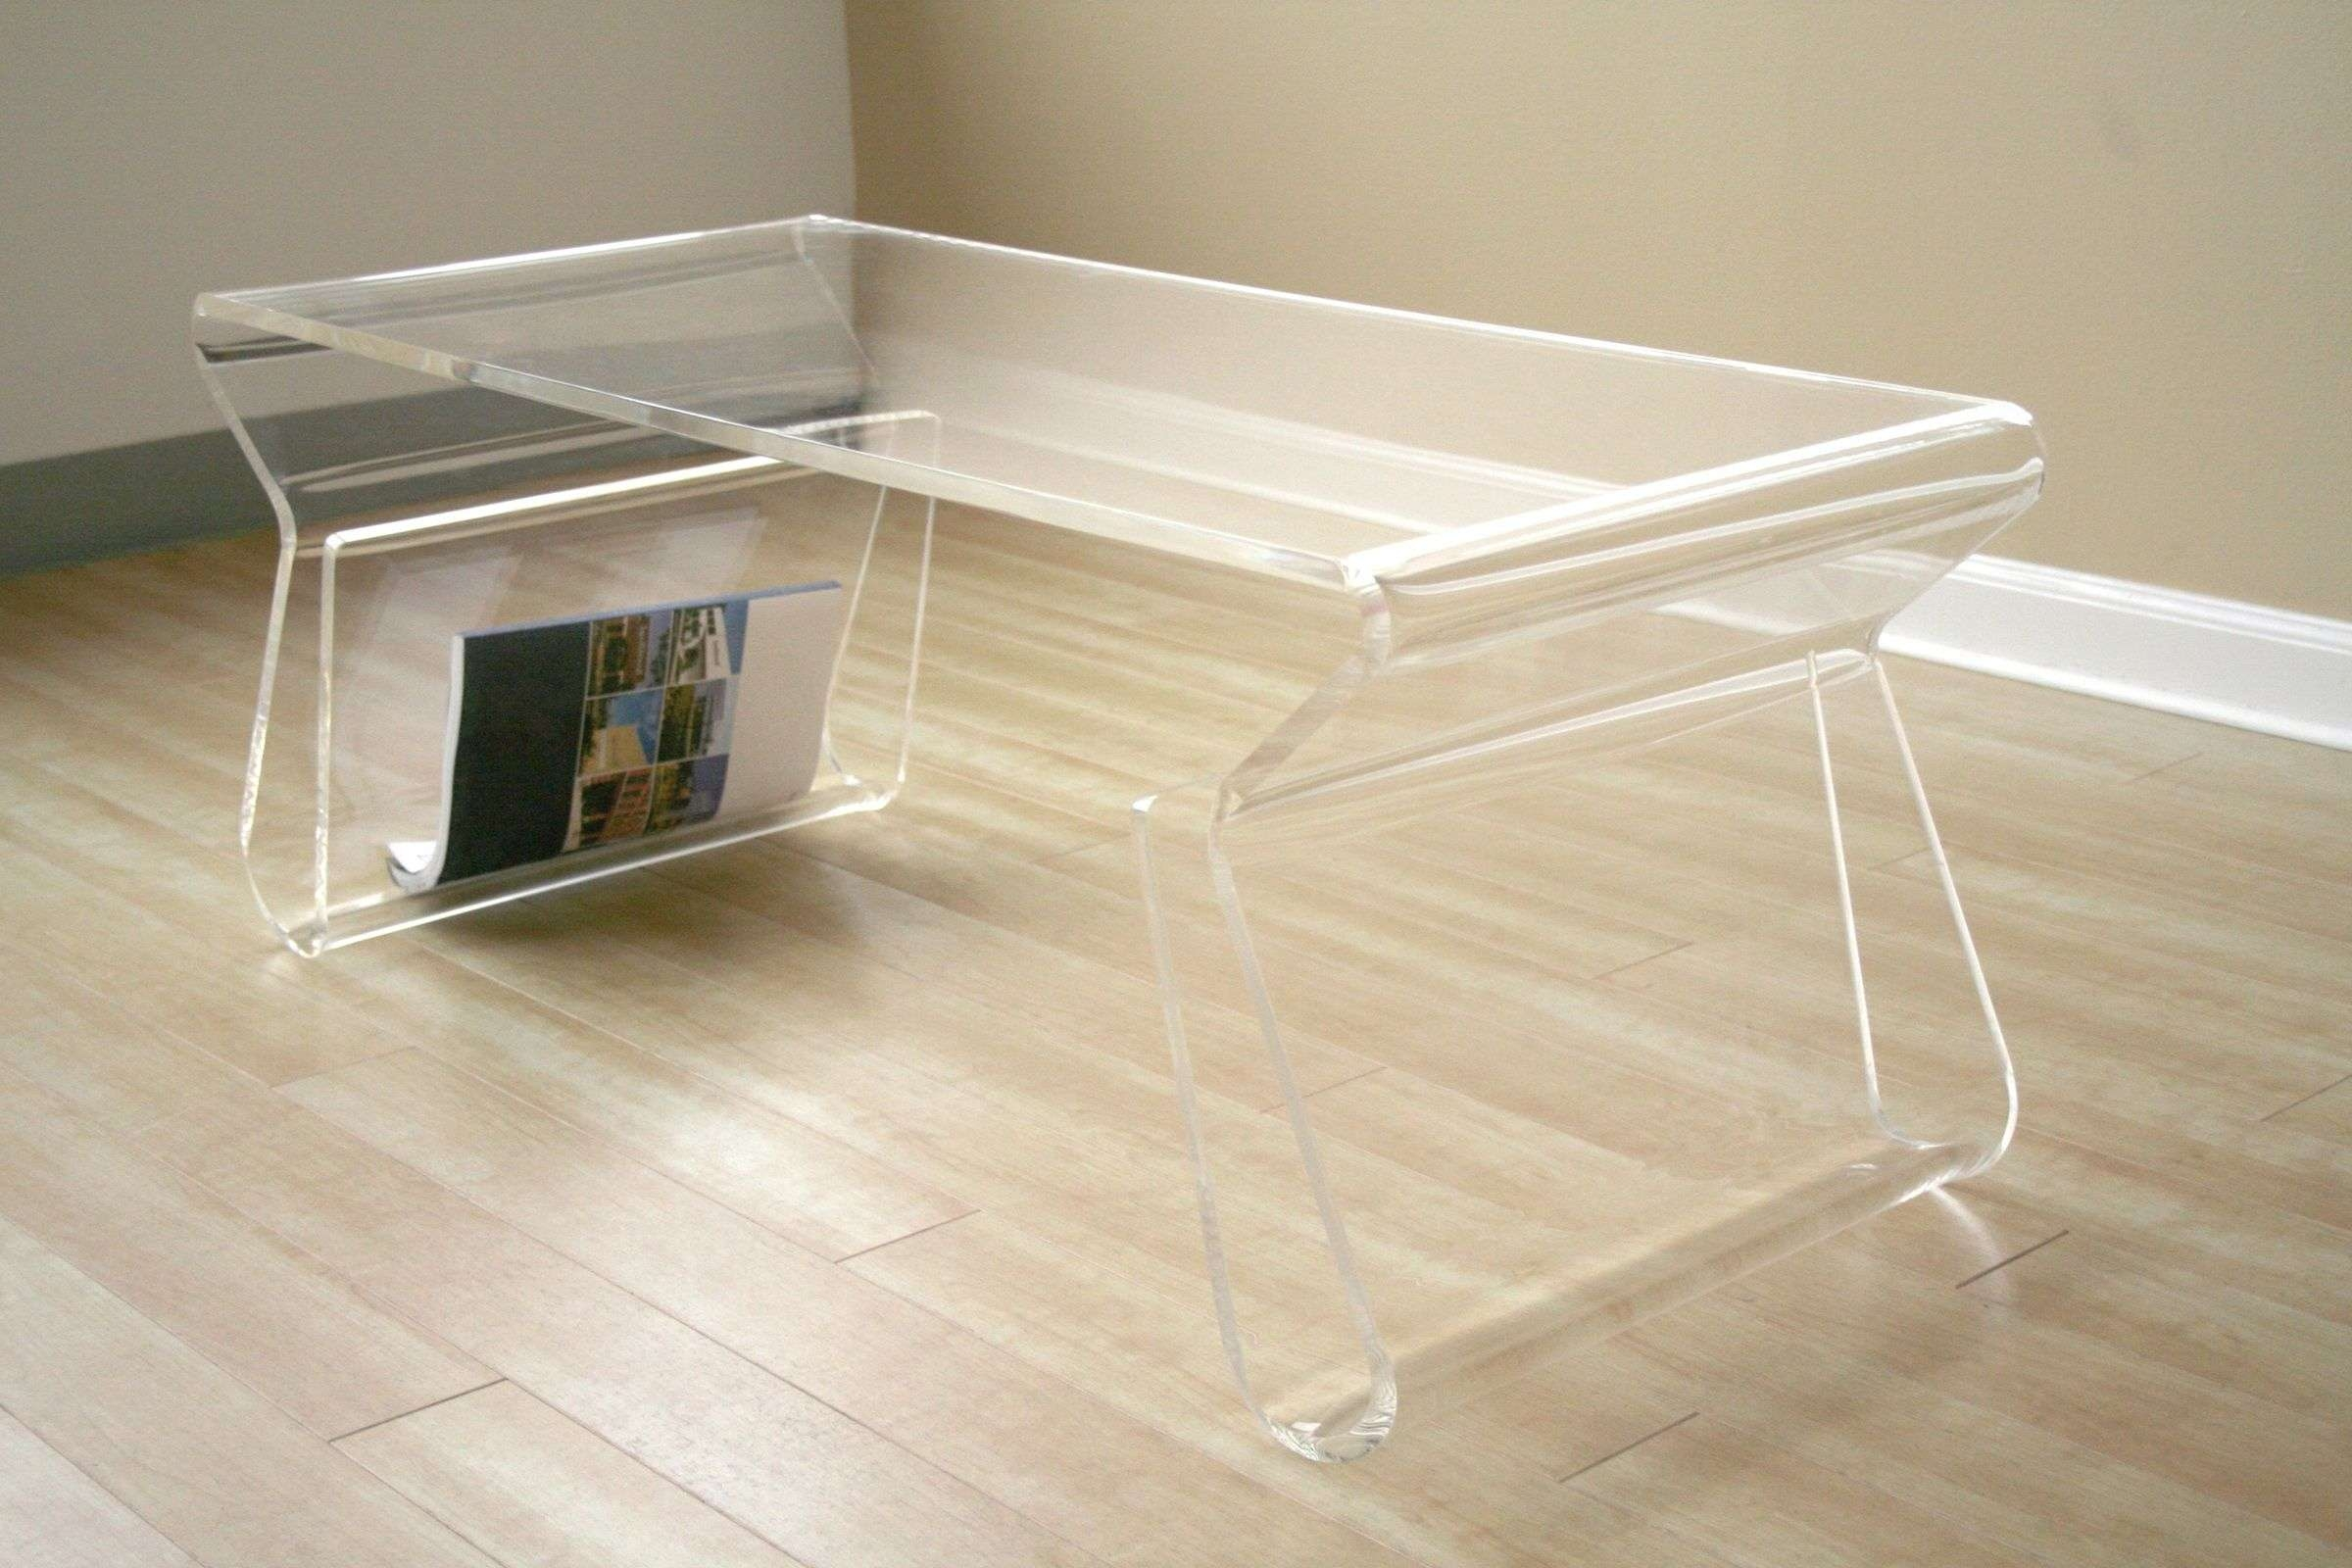 Fashionable Acrylic Coffee Tables With Magazine Rack For Clear Coffee Table – Writehookstudio (View 16 of 20)